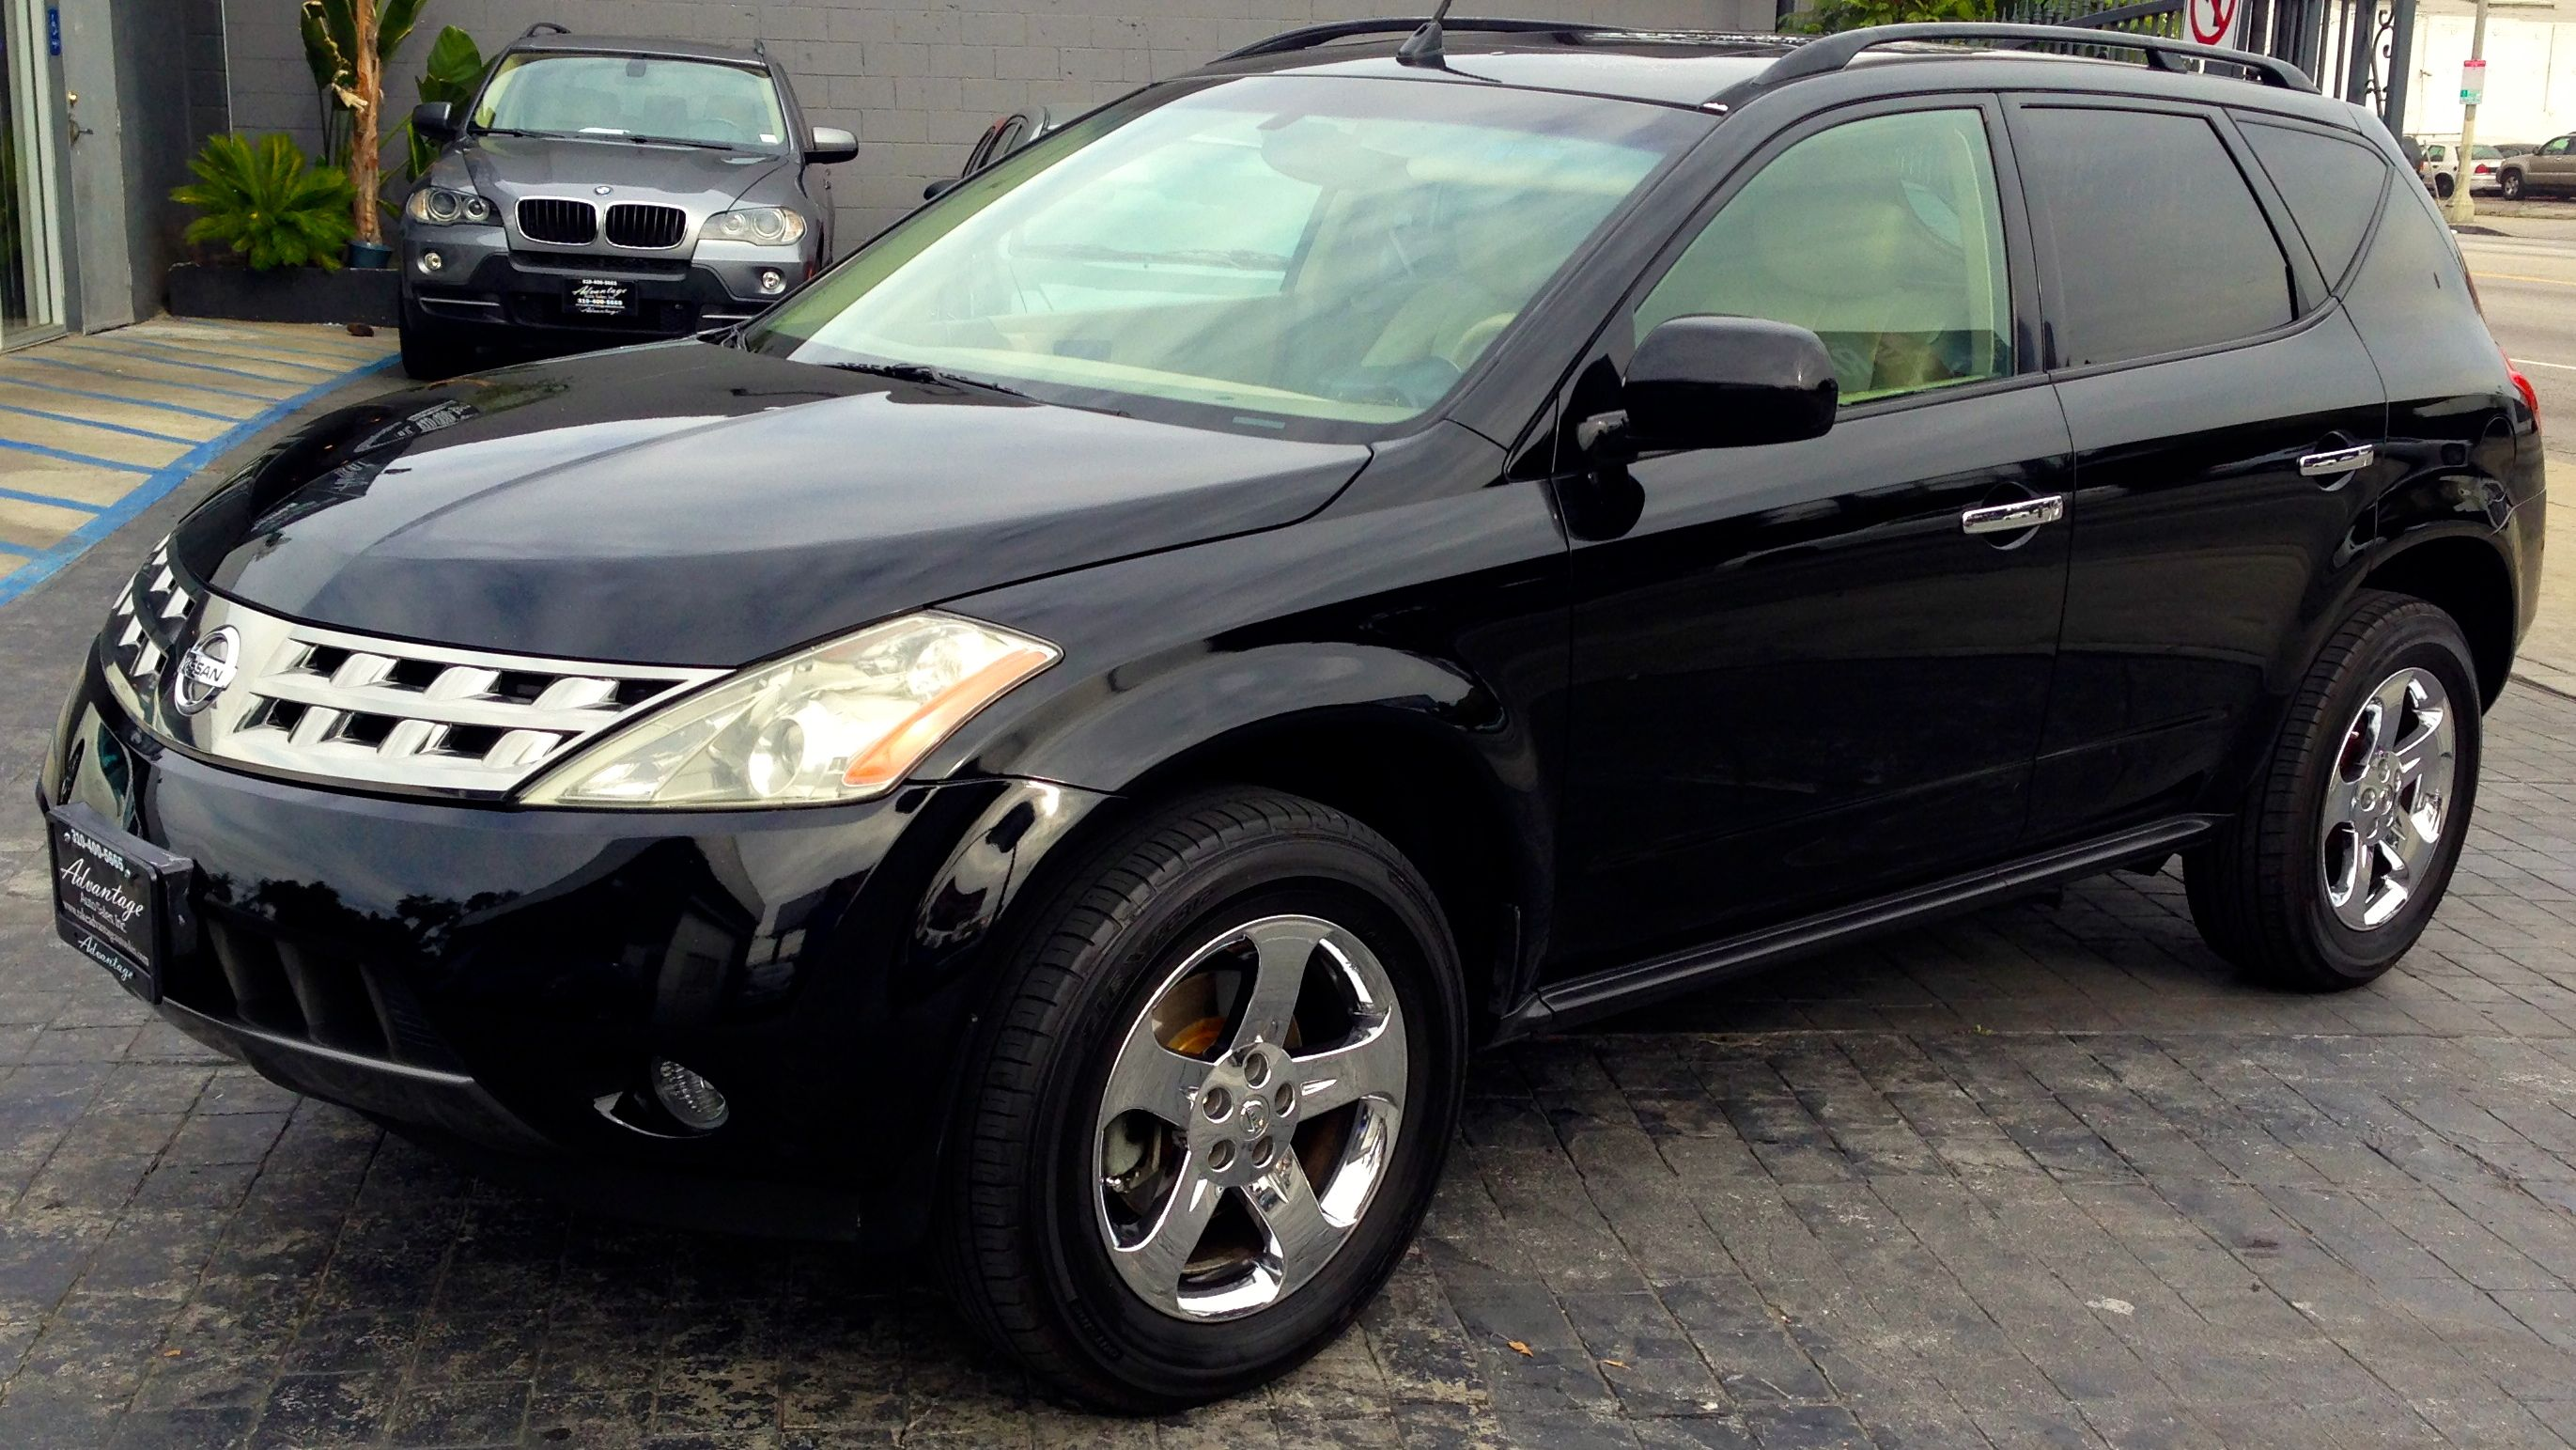 convertible murano japan sale from reviews for seo article review nissan car